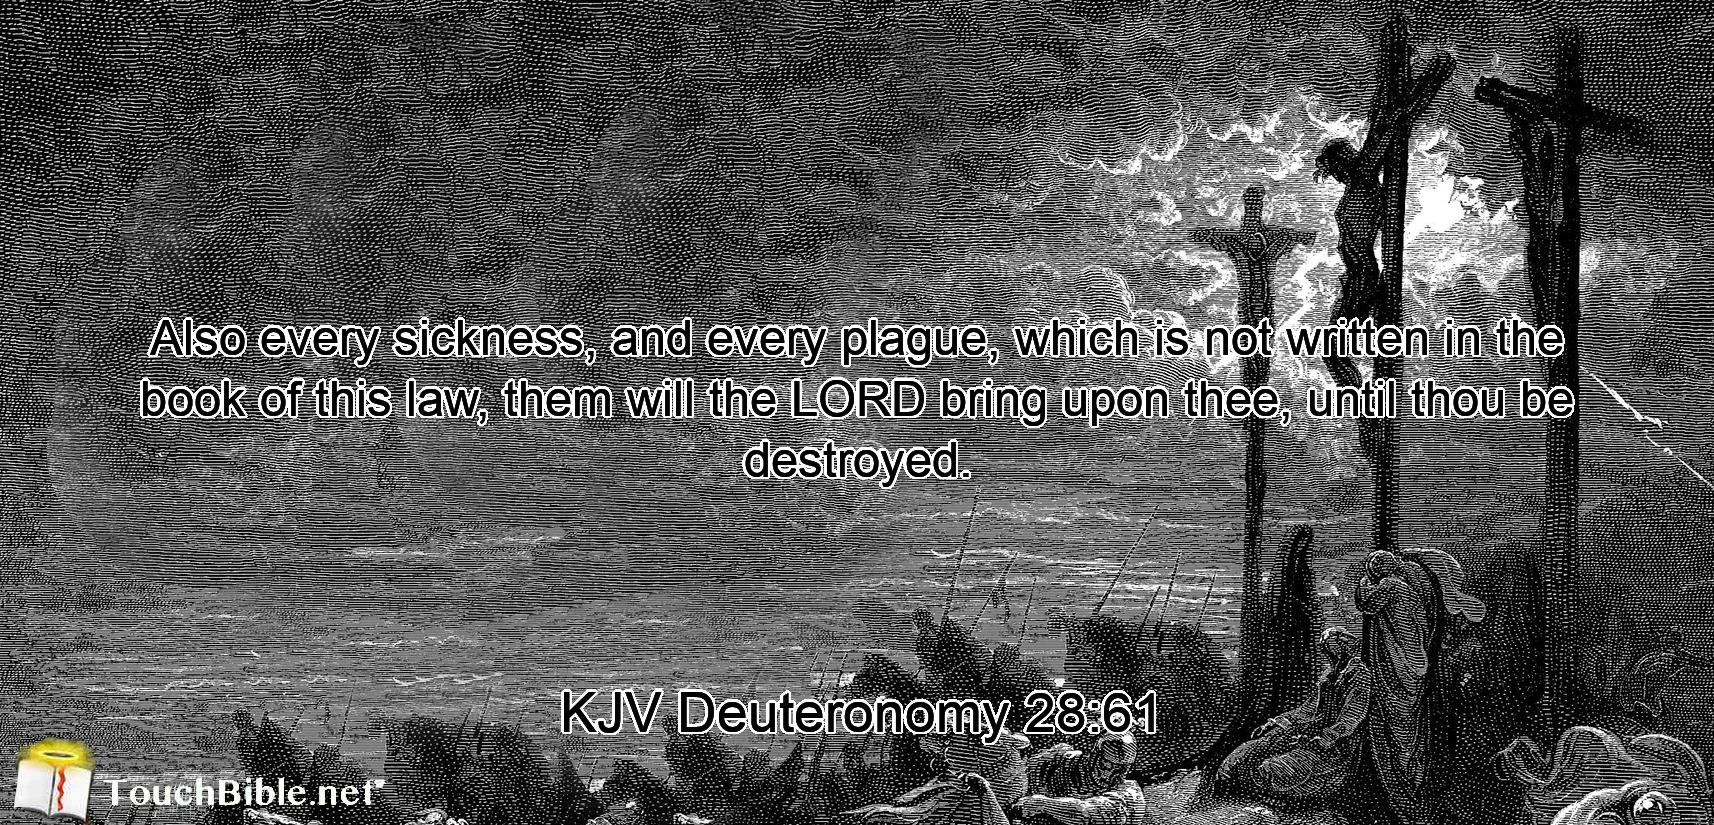 Also every sickness, and every plague, which is not written in the book of this law, them will the LORD bring upon thee, until thou be destroyed.